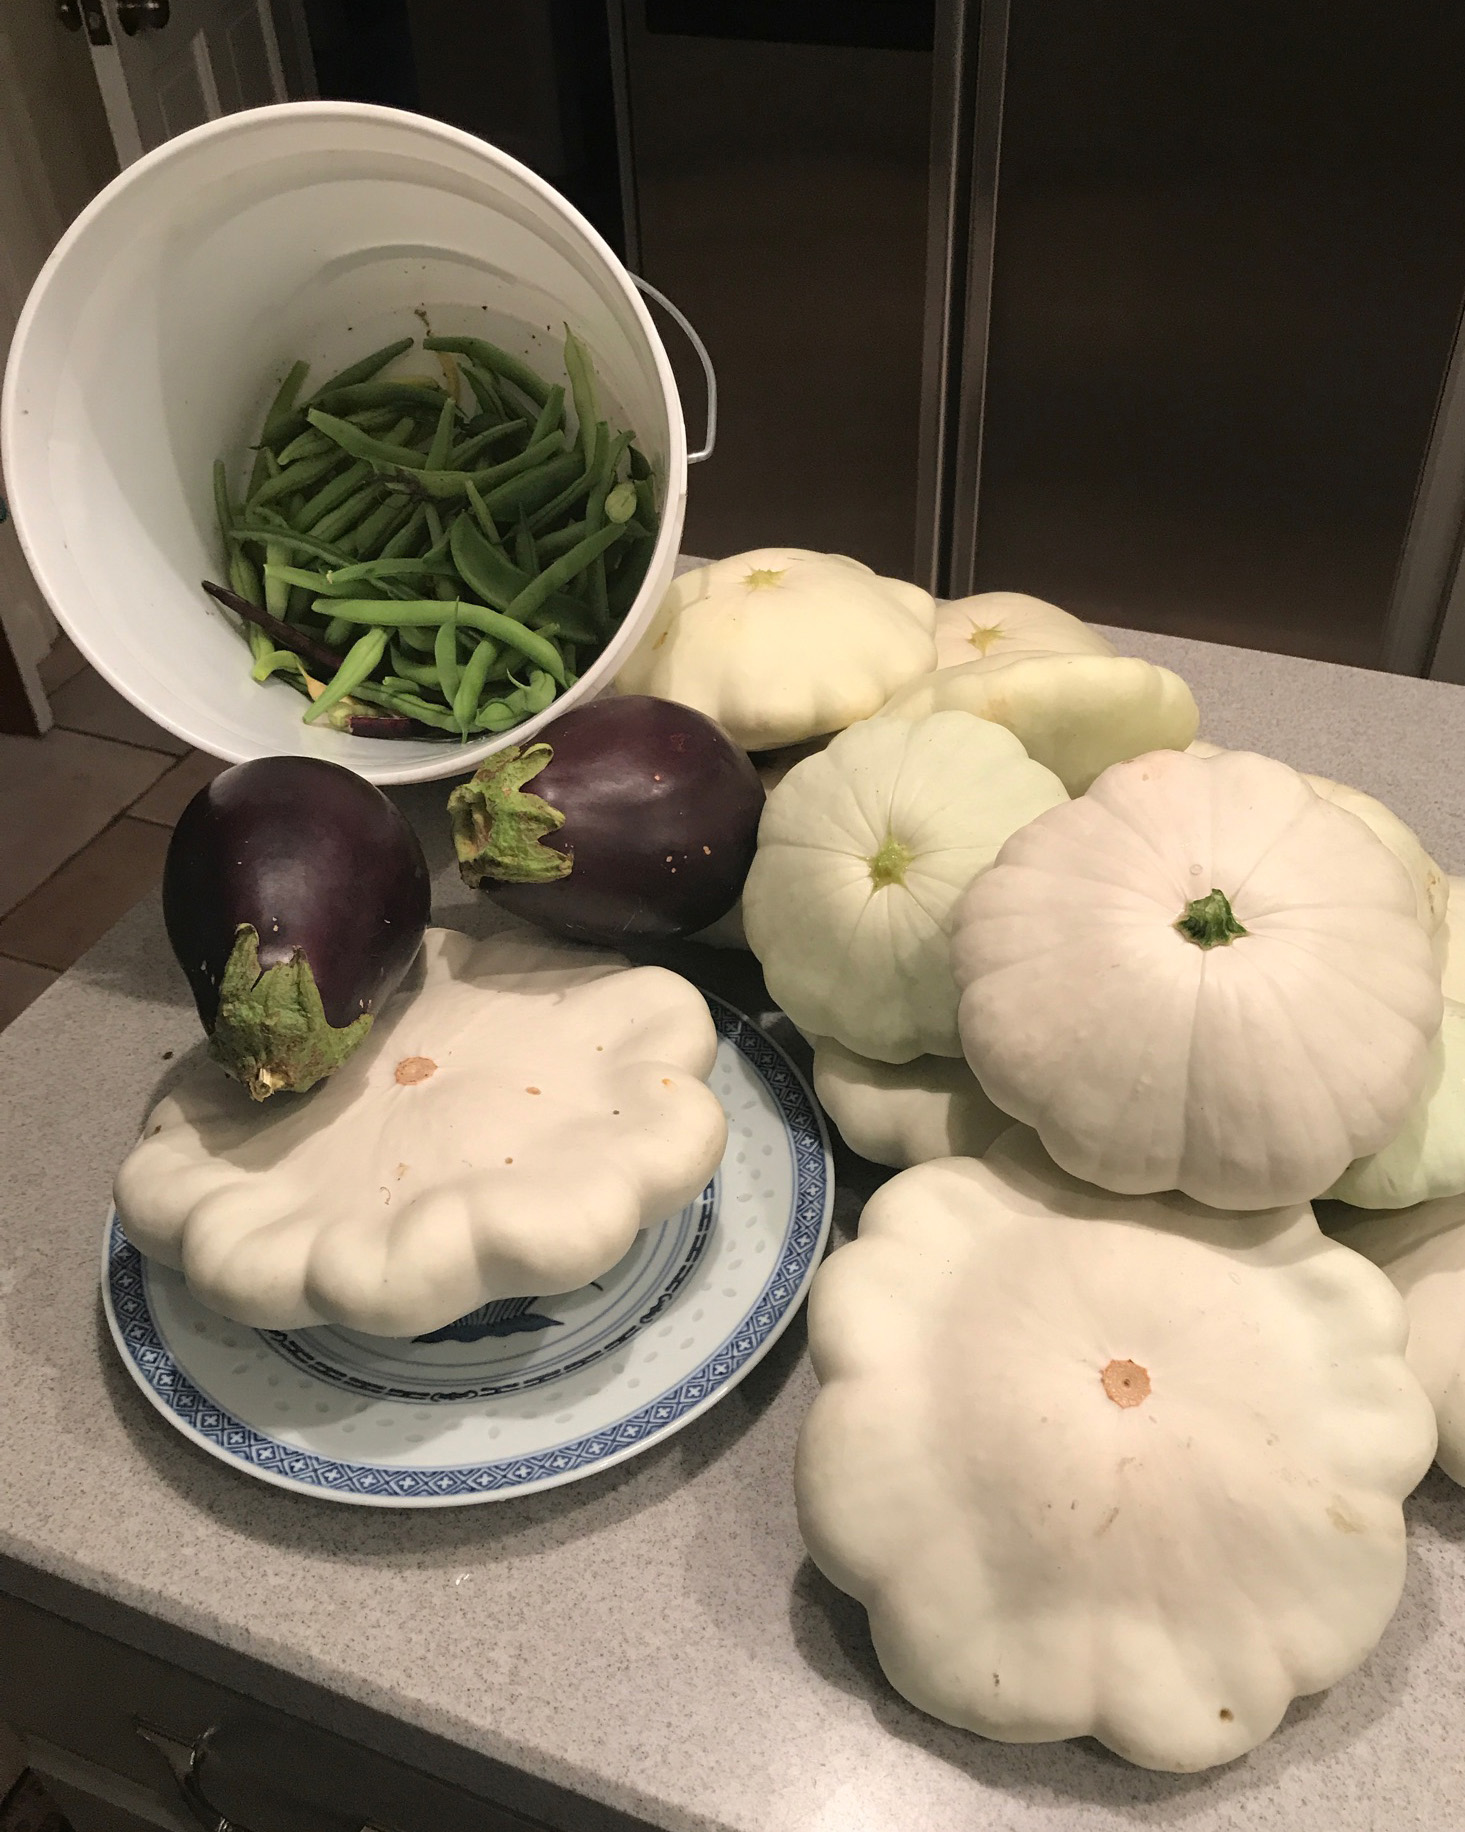 patty pan squash and green beans from Ross garden